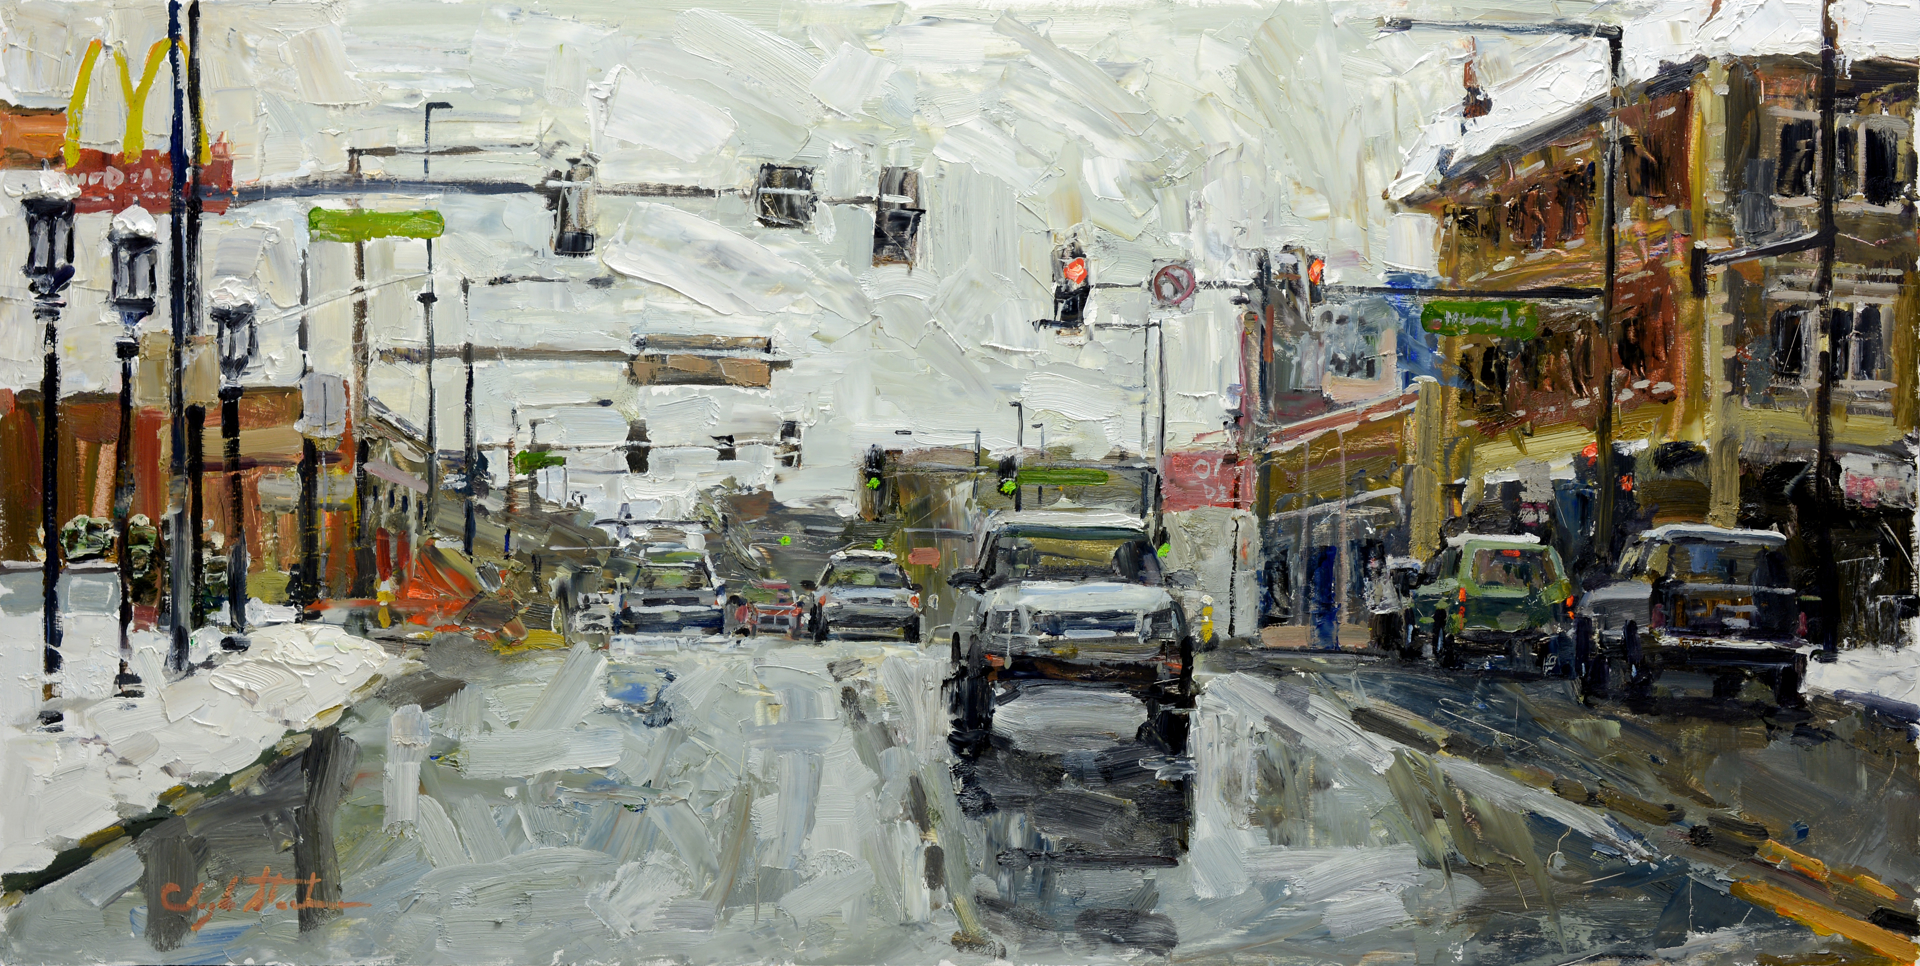 Cold Street by Clyde Steadman